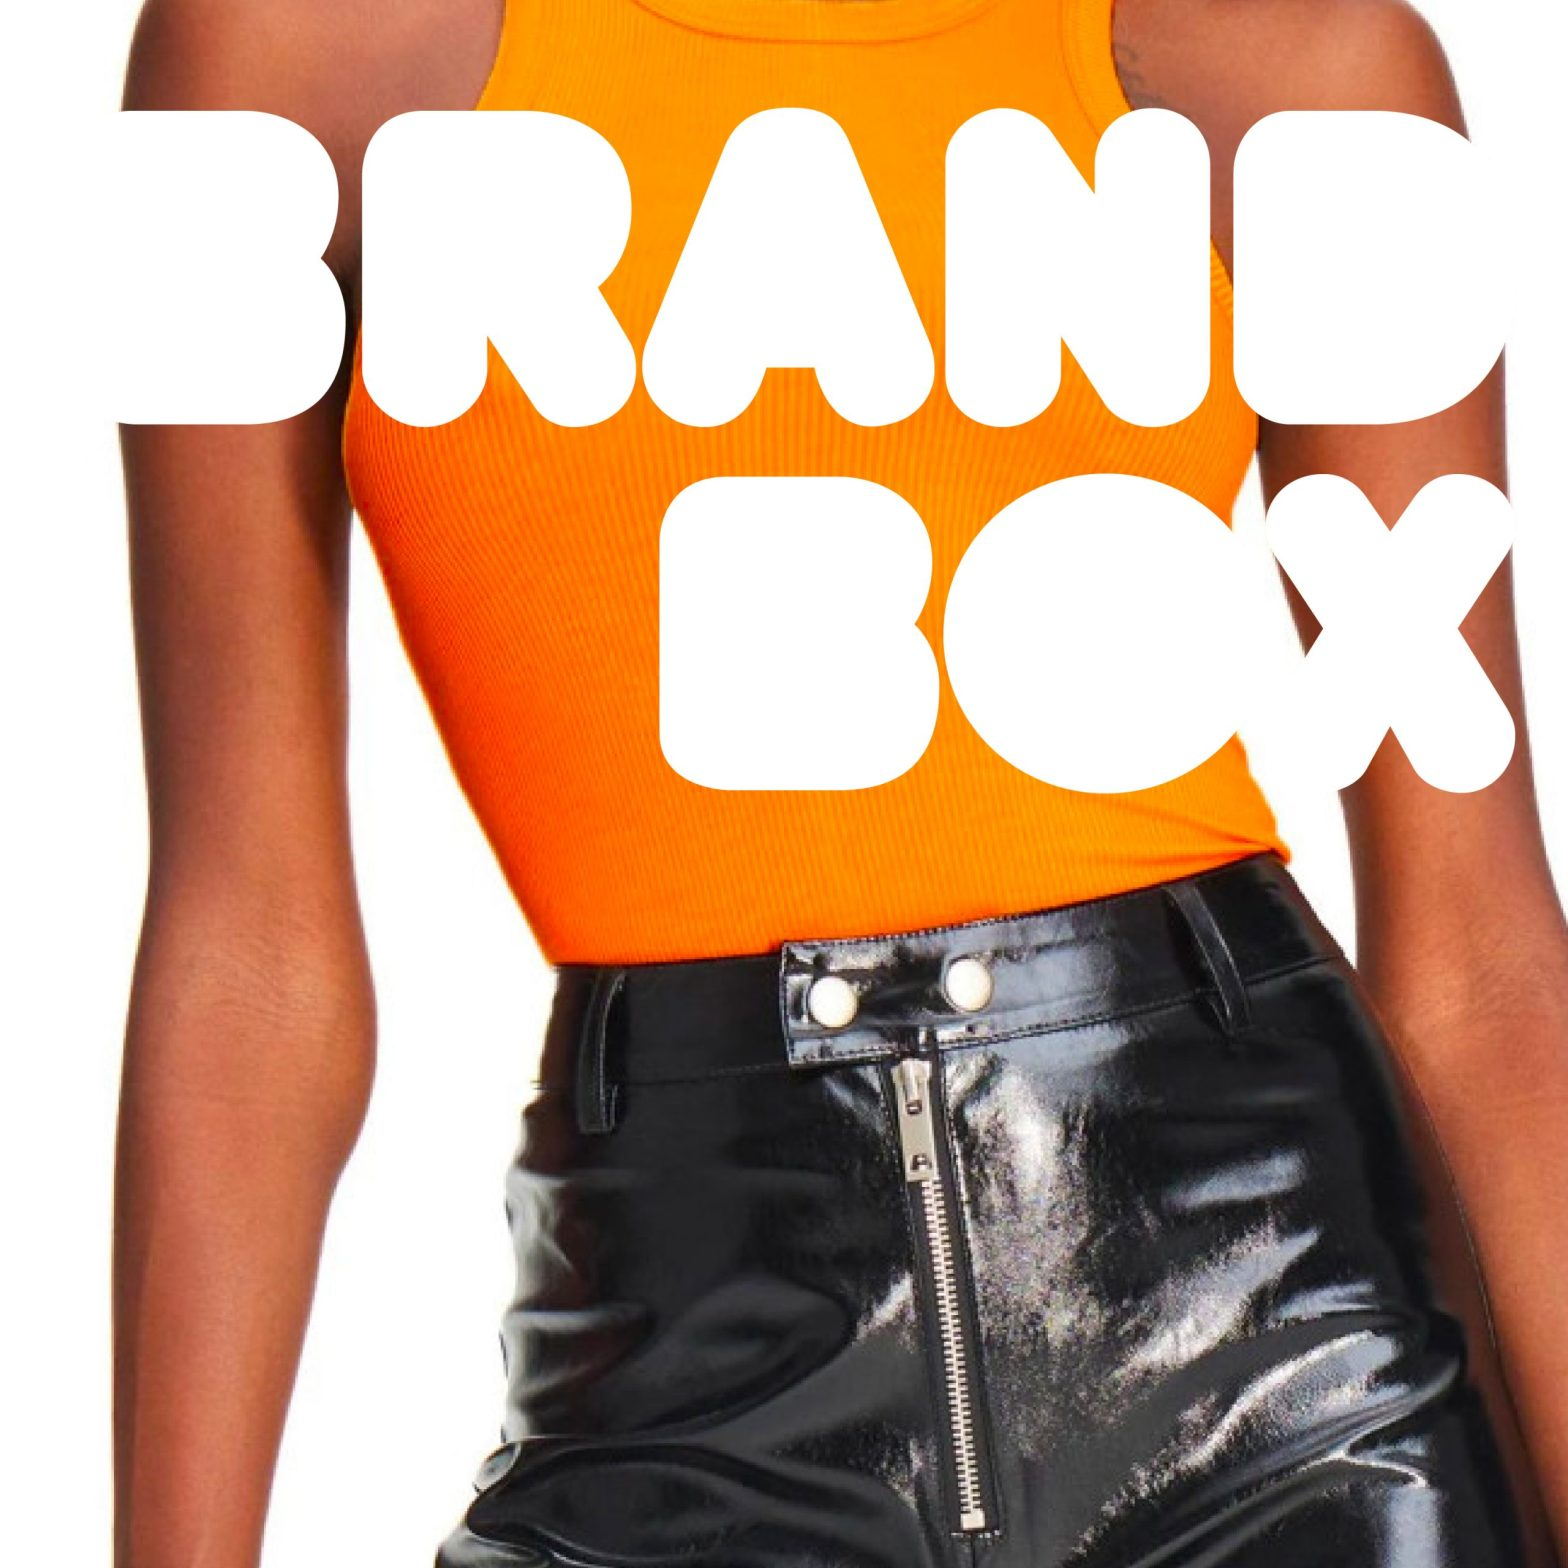 Thumbnail for BrandBox: Cleverness, Clothes, and Fashion